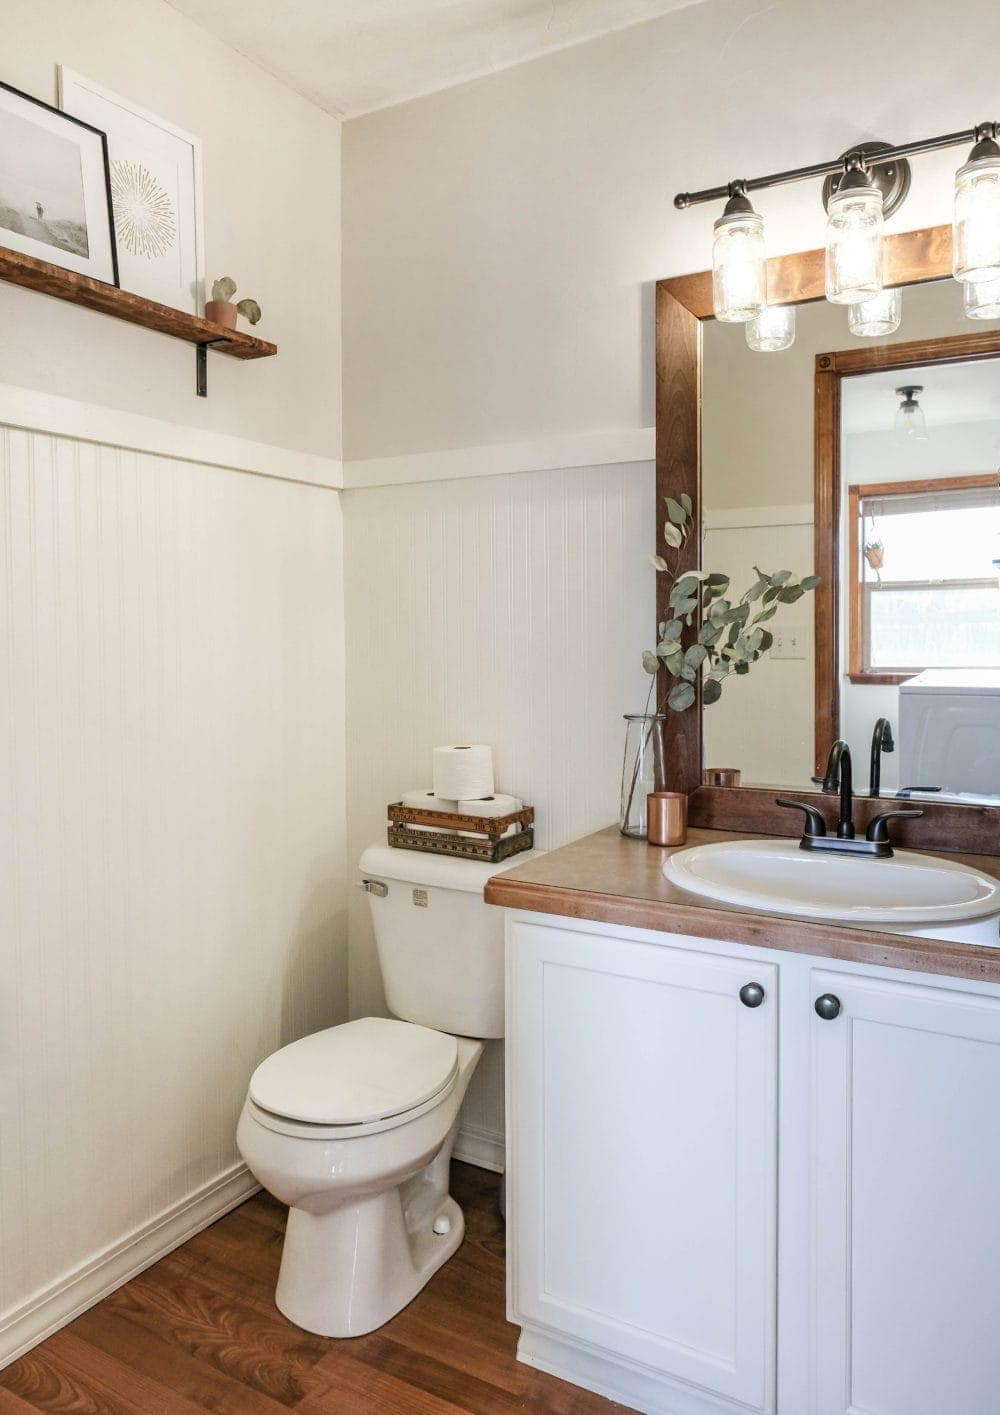 8 Popular Bathroom Remodel Ideas And Trends For 2021